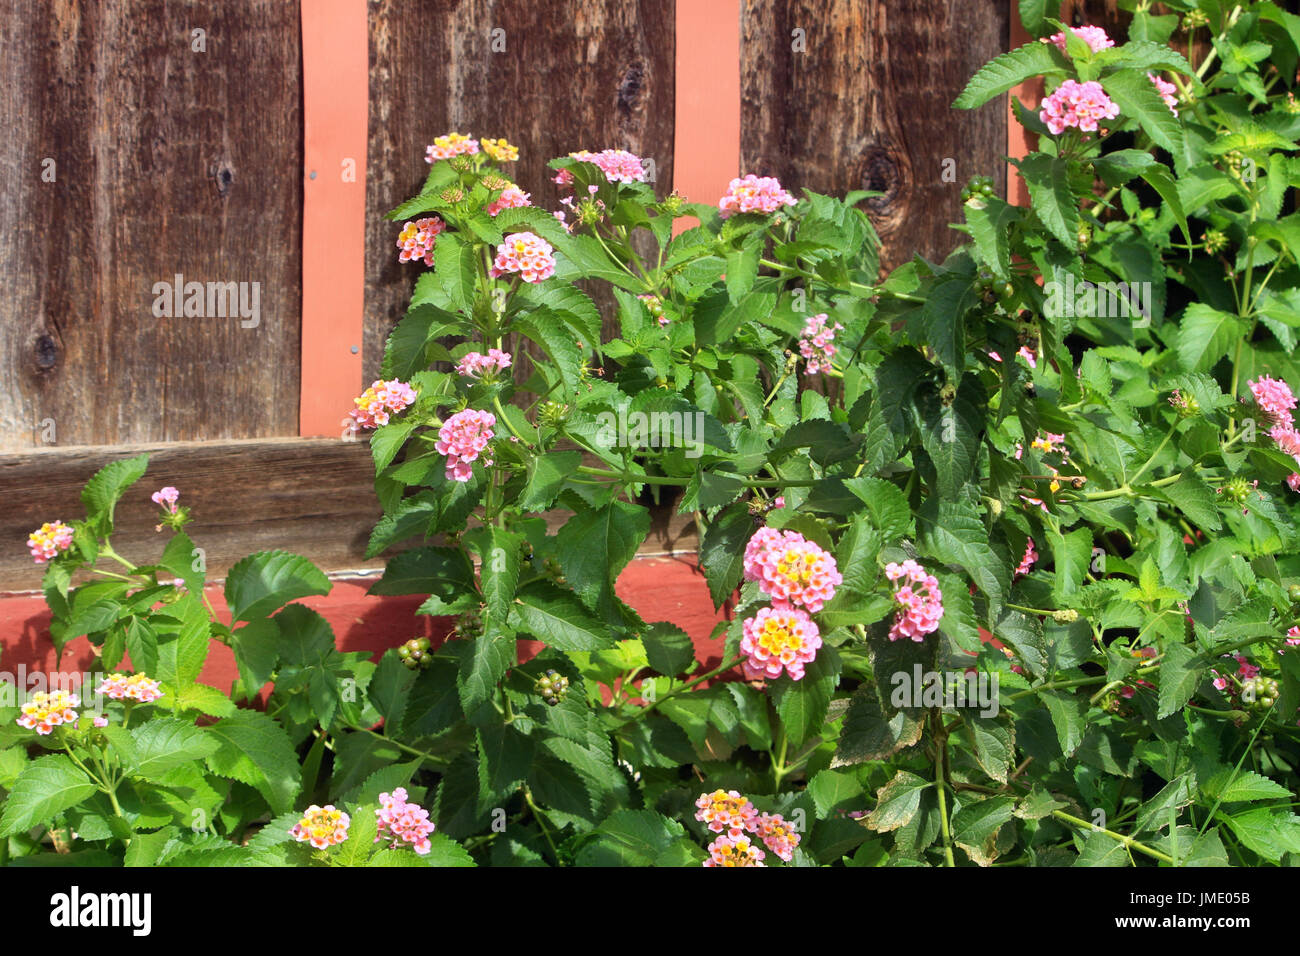 Lantana plants stand out against a wood wall. - Stock Image